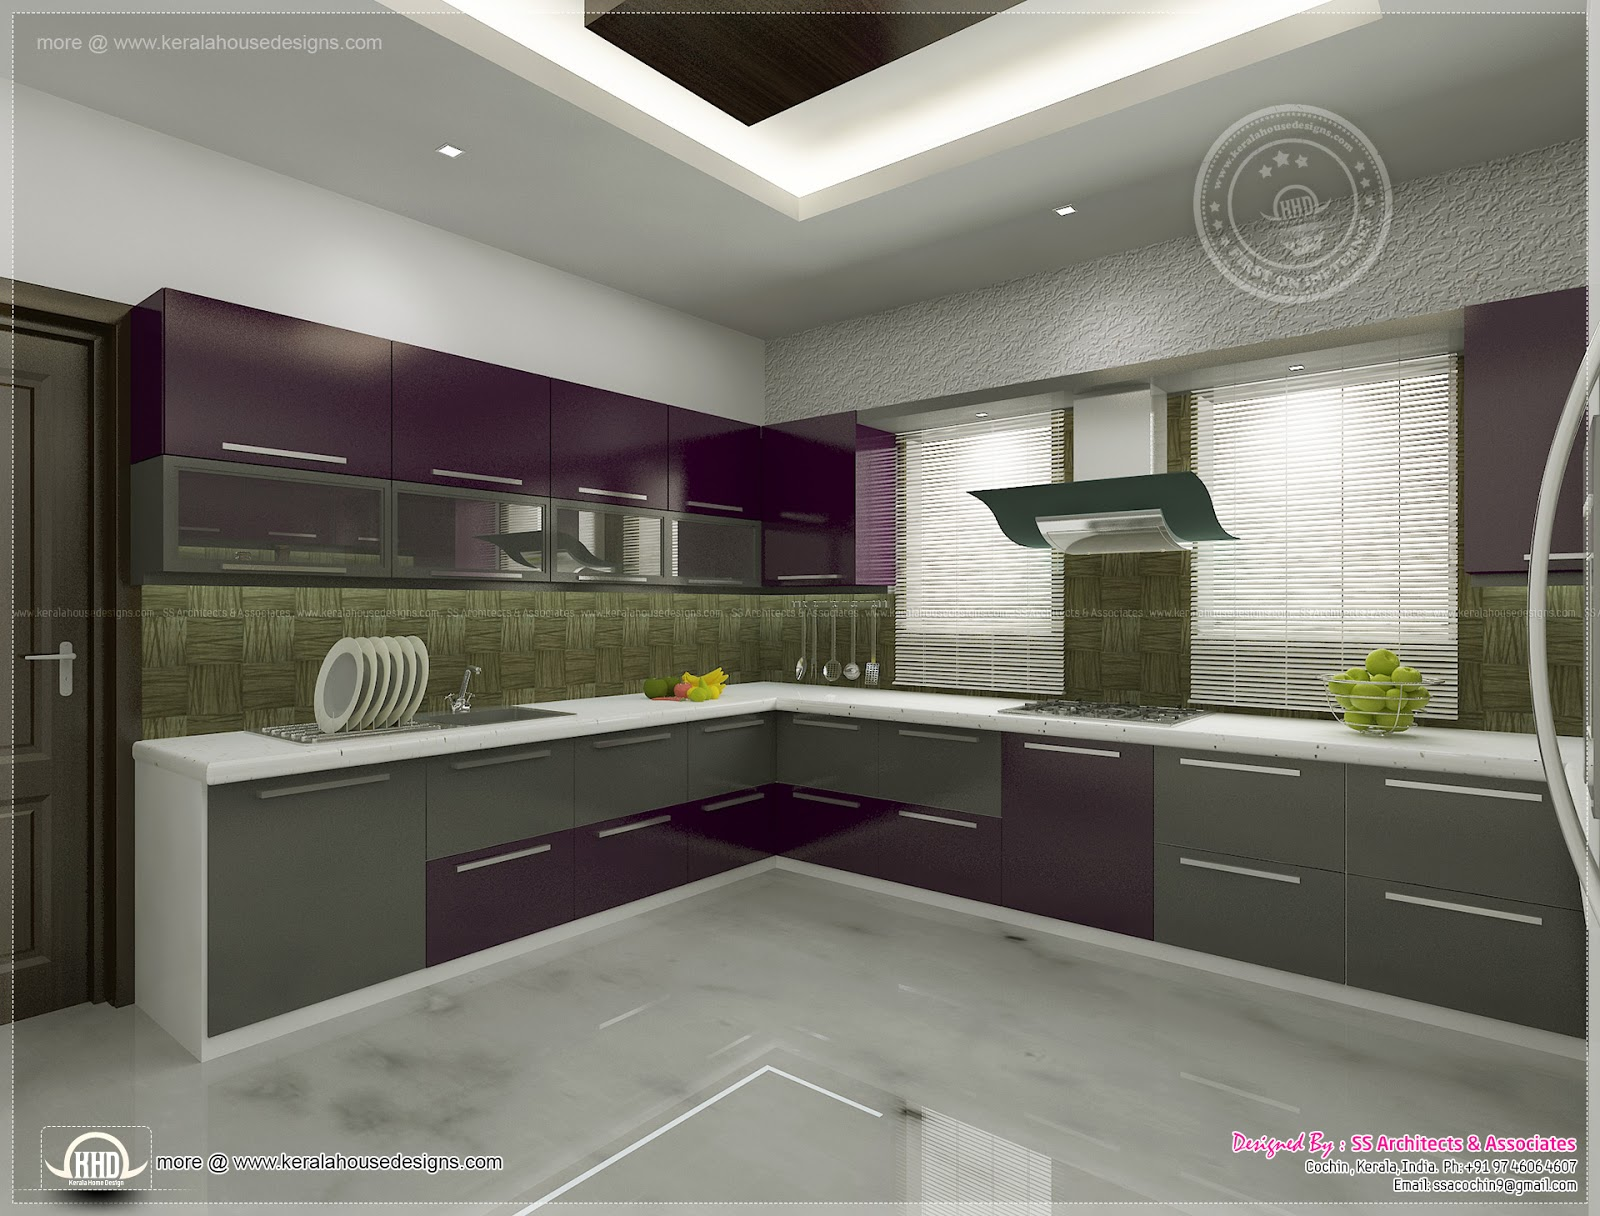 kitchen interior ideas kitchen interior views by ss architects cochin kerala 13388